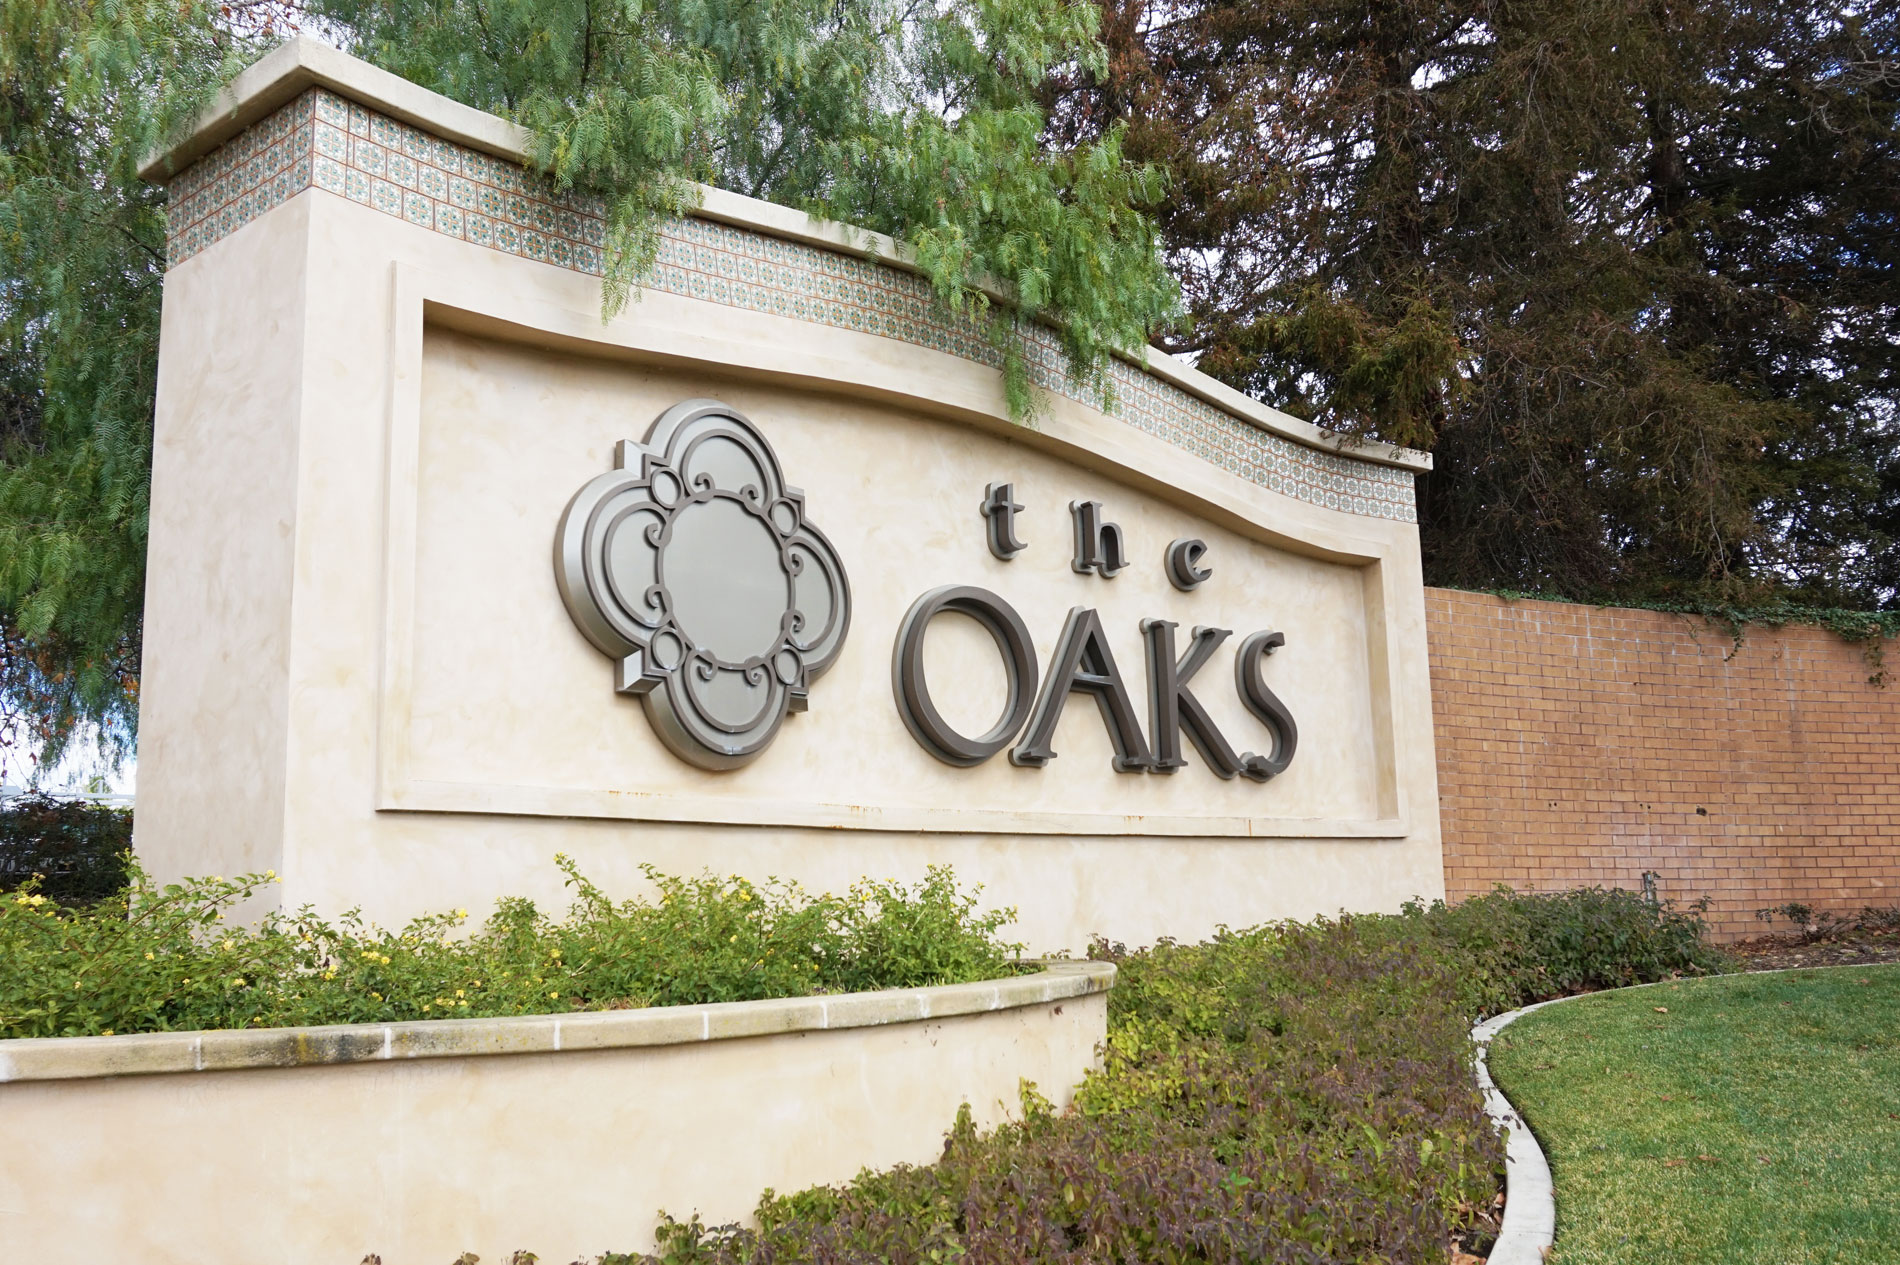 Custom commercial sign at oaks mall